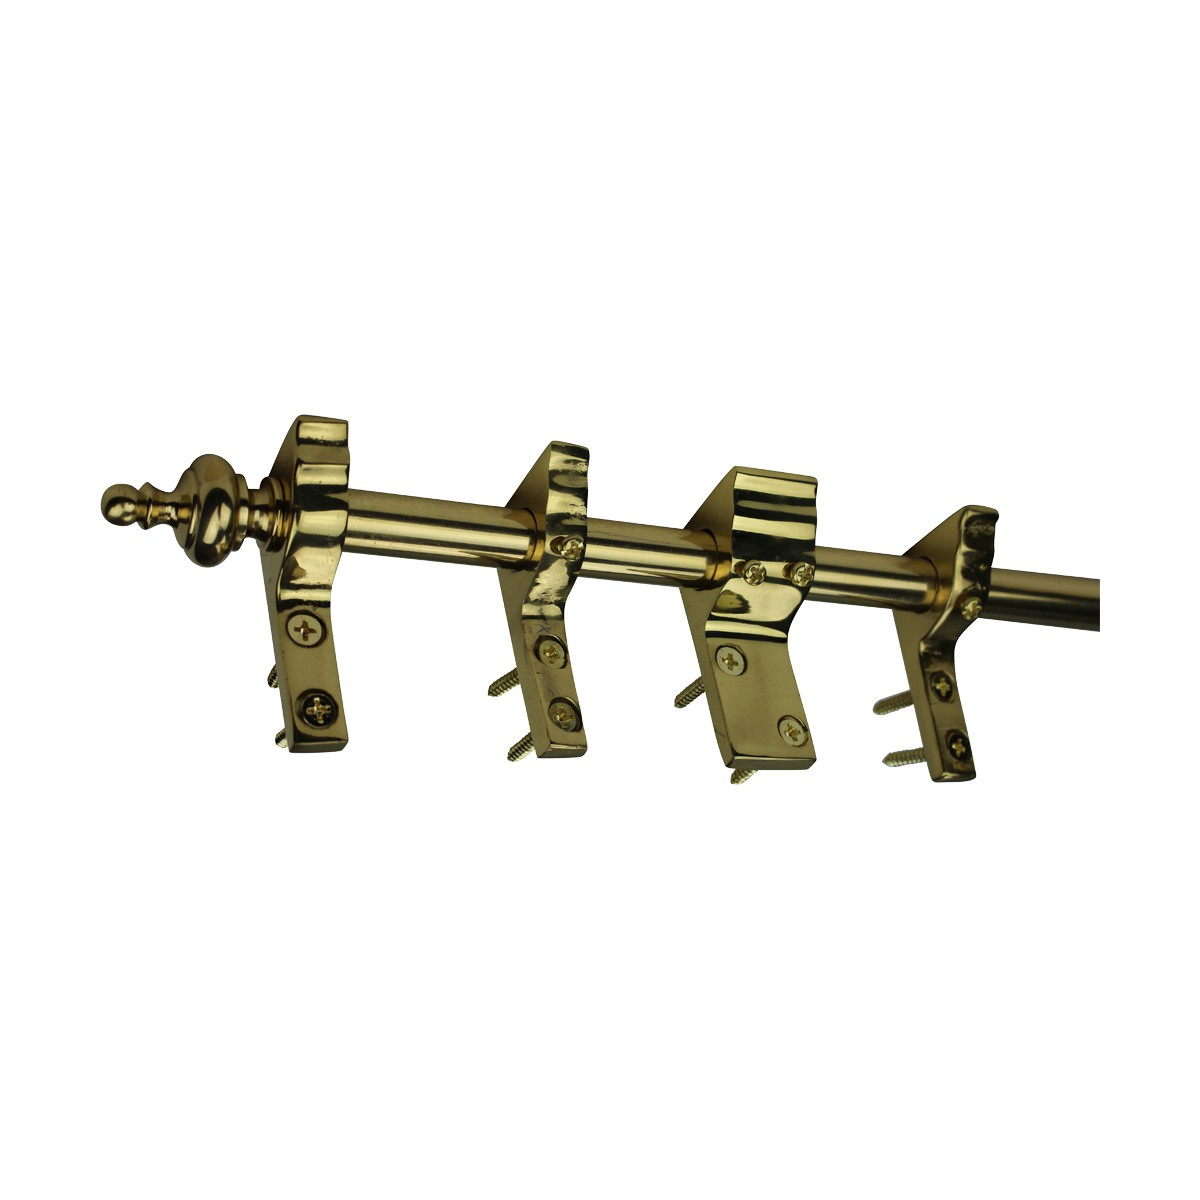 Quilt Hanger Bright Brass 9 Ft Urn Finial Quilt Holders Heavy duty quilt hanger Quilt Rack